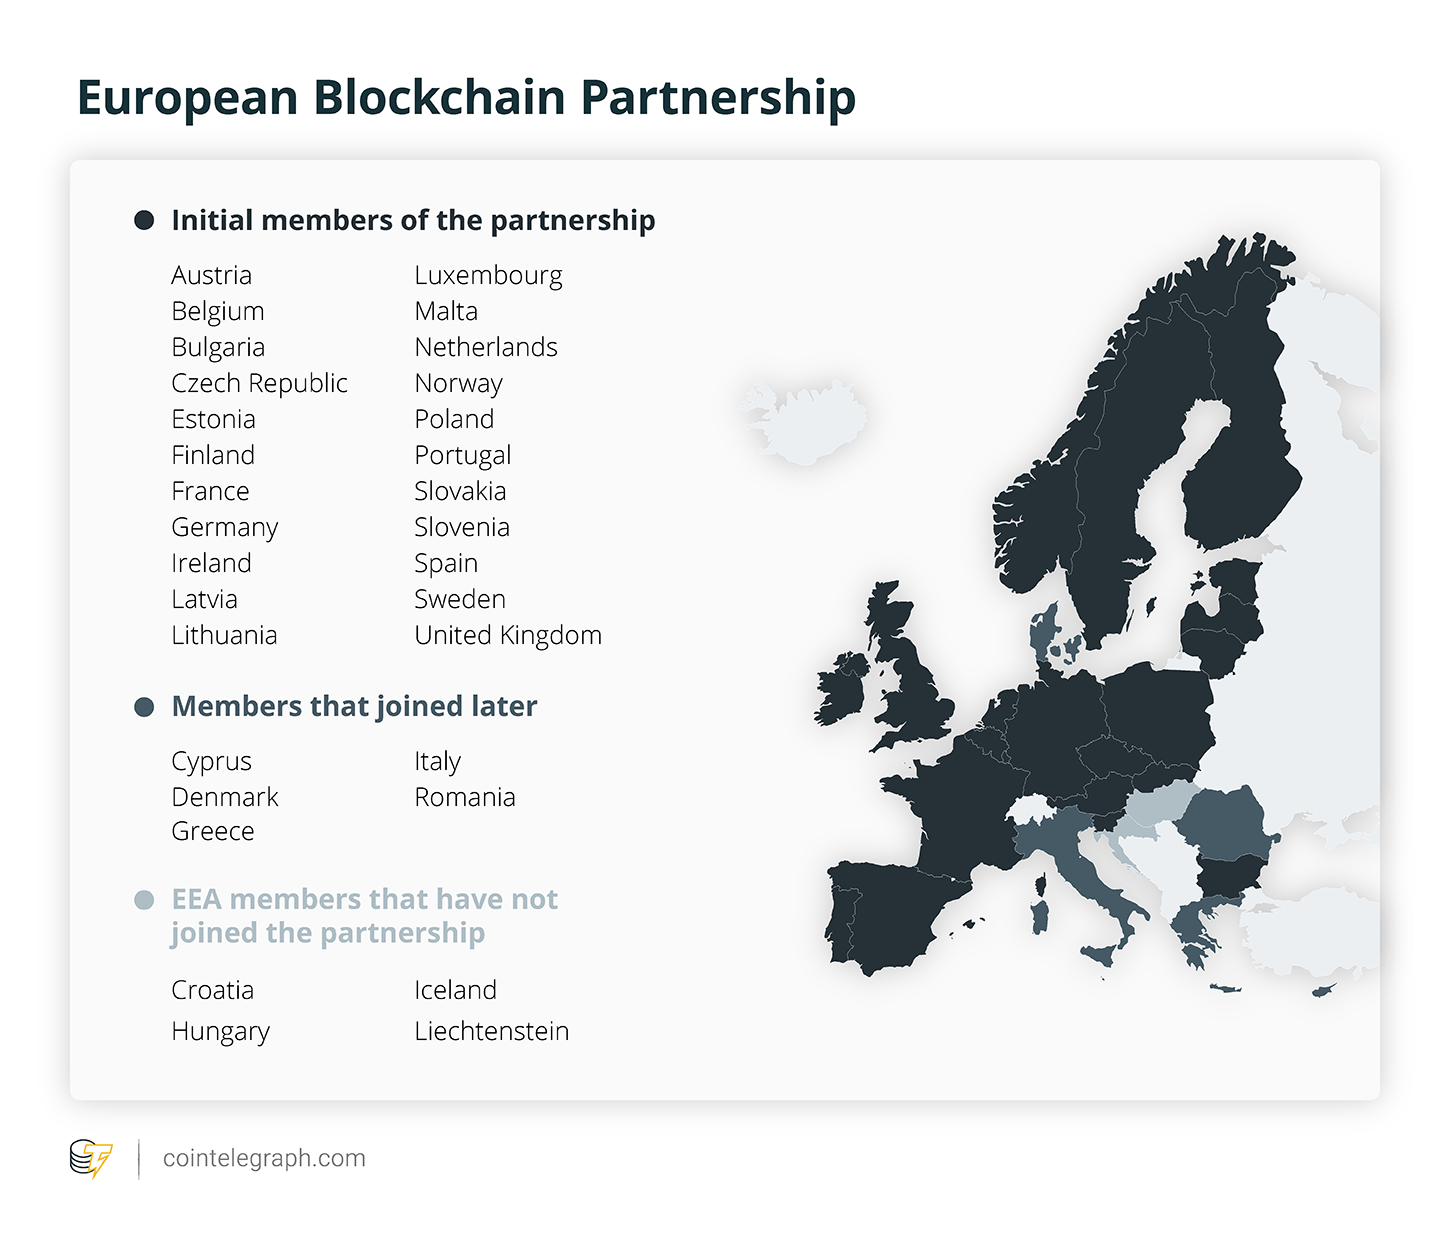 European Blockchain Partnership